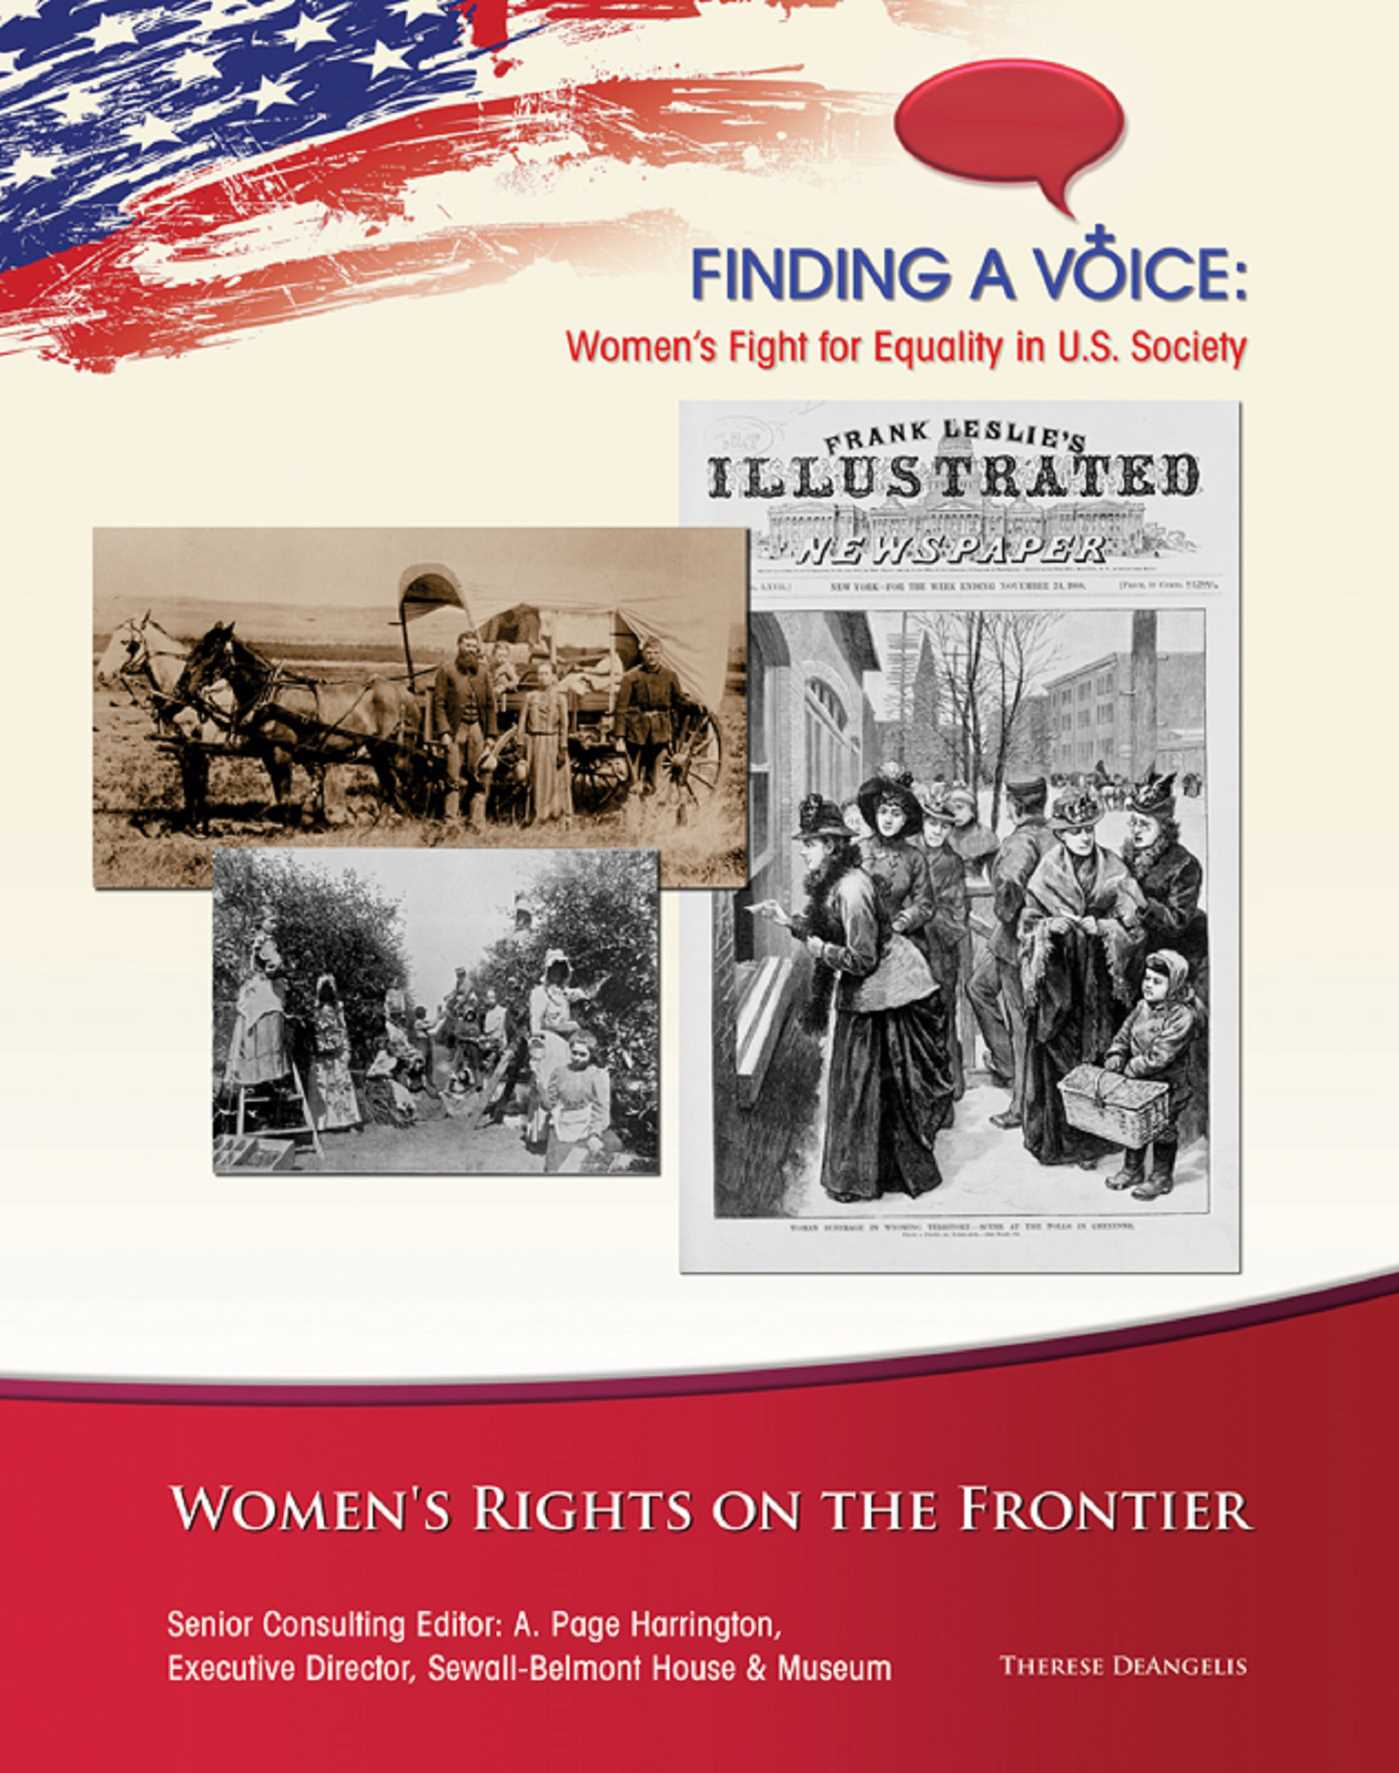 a history of women fighting for their rights In celebration of women's history month, we're putting the spotlight on the contributions of women in history by honoring the pioneers who made major advances in civil rights, women's suffrage.